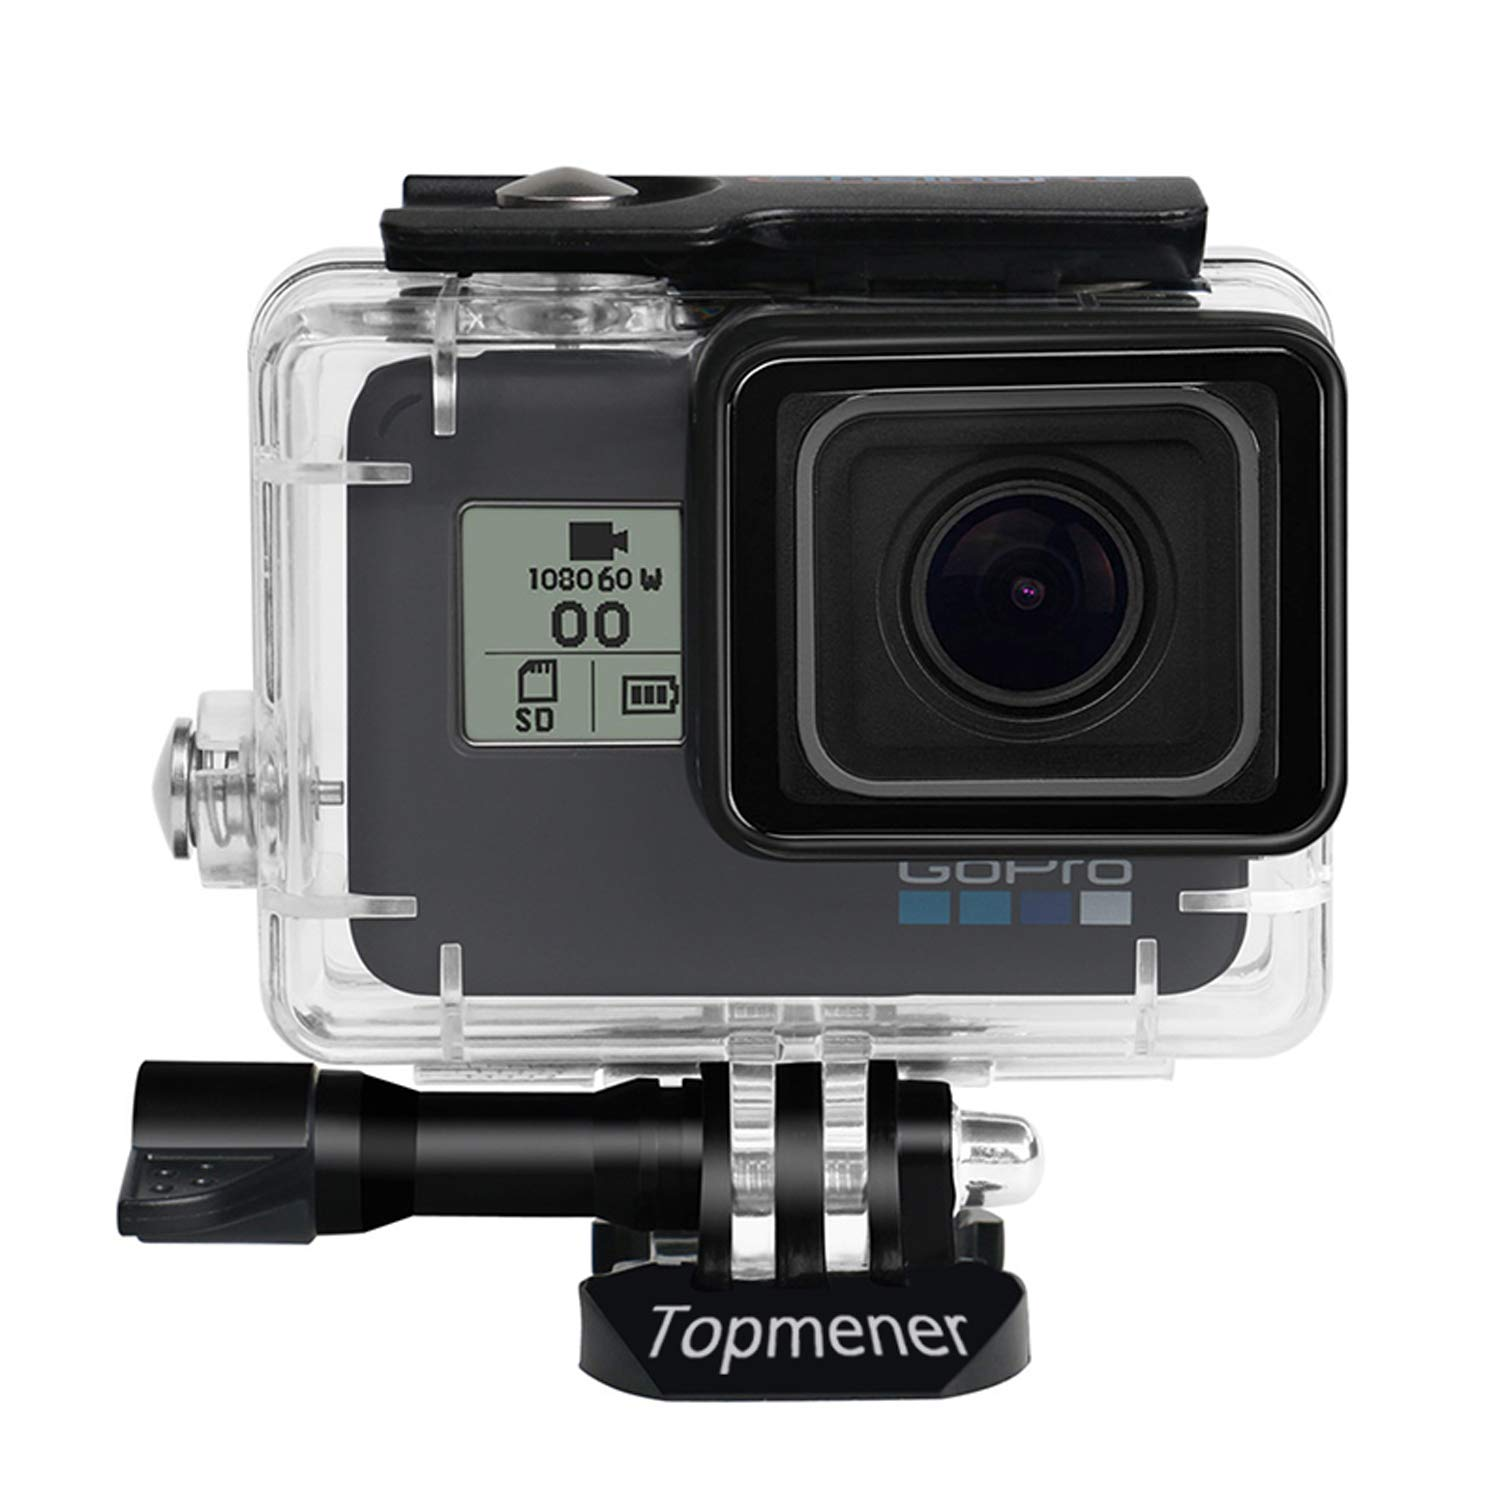 Thumbscrew and Lens Cap-45 M Topmener Waterproof Housing Case for GoPro Hero 7 6 5 2018 Black Action Camera Accessories HD Dive Case Underwater Protective Shell Anti-Scratch with Anti-Fog Insert